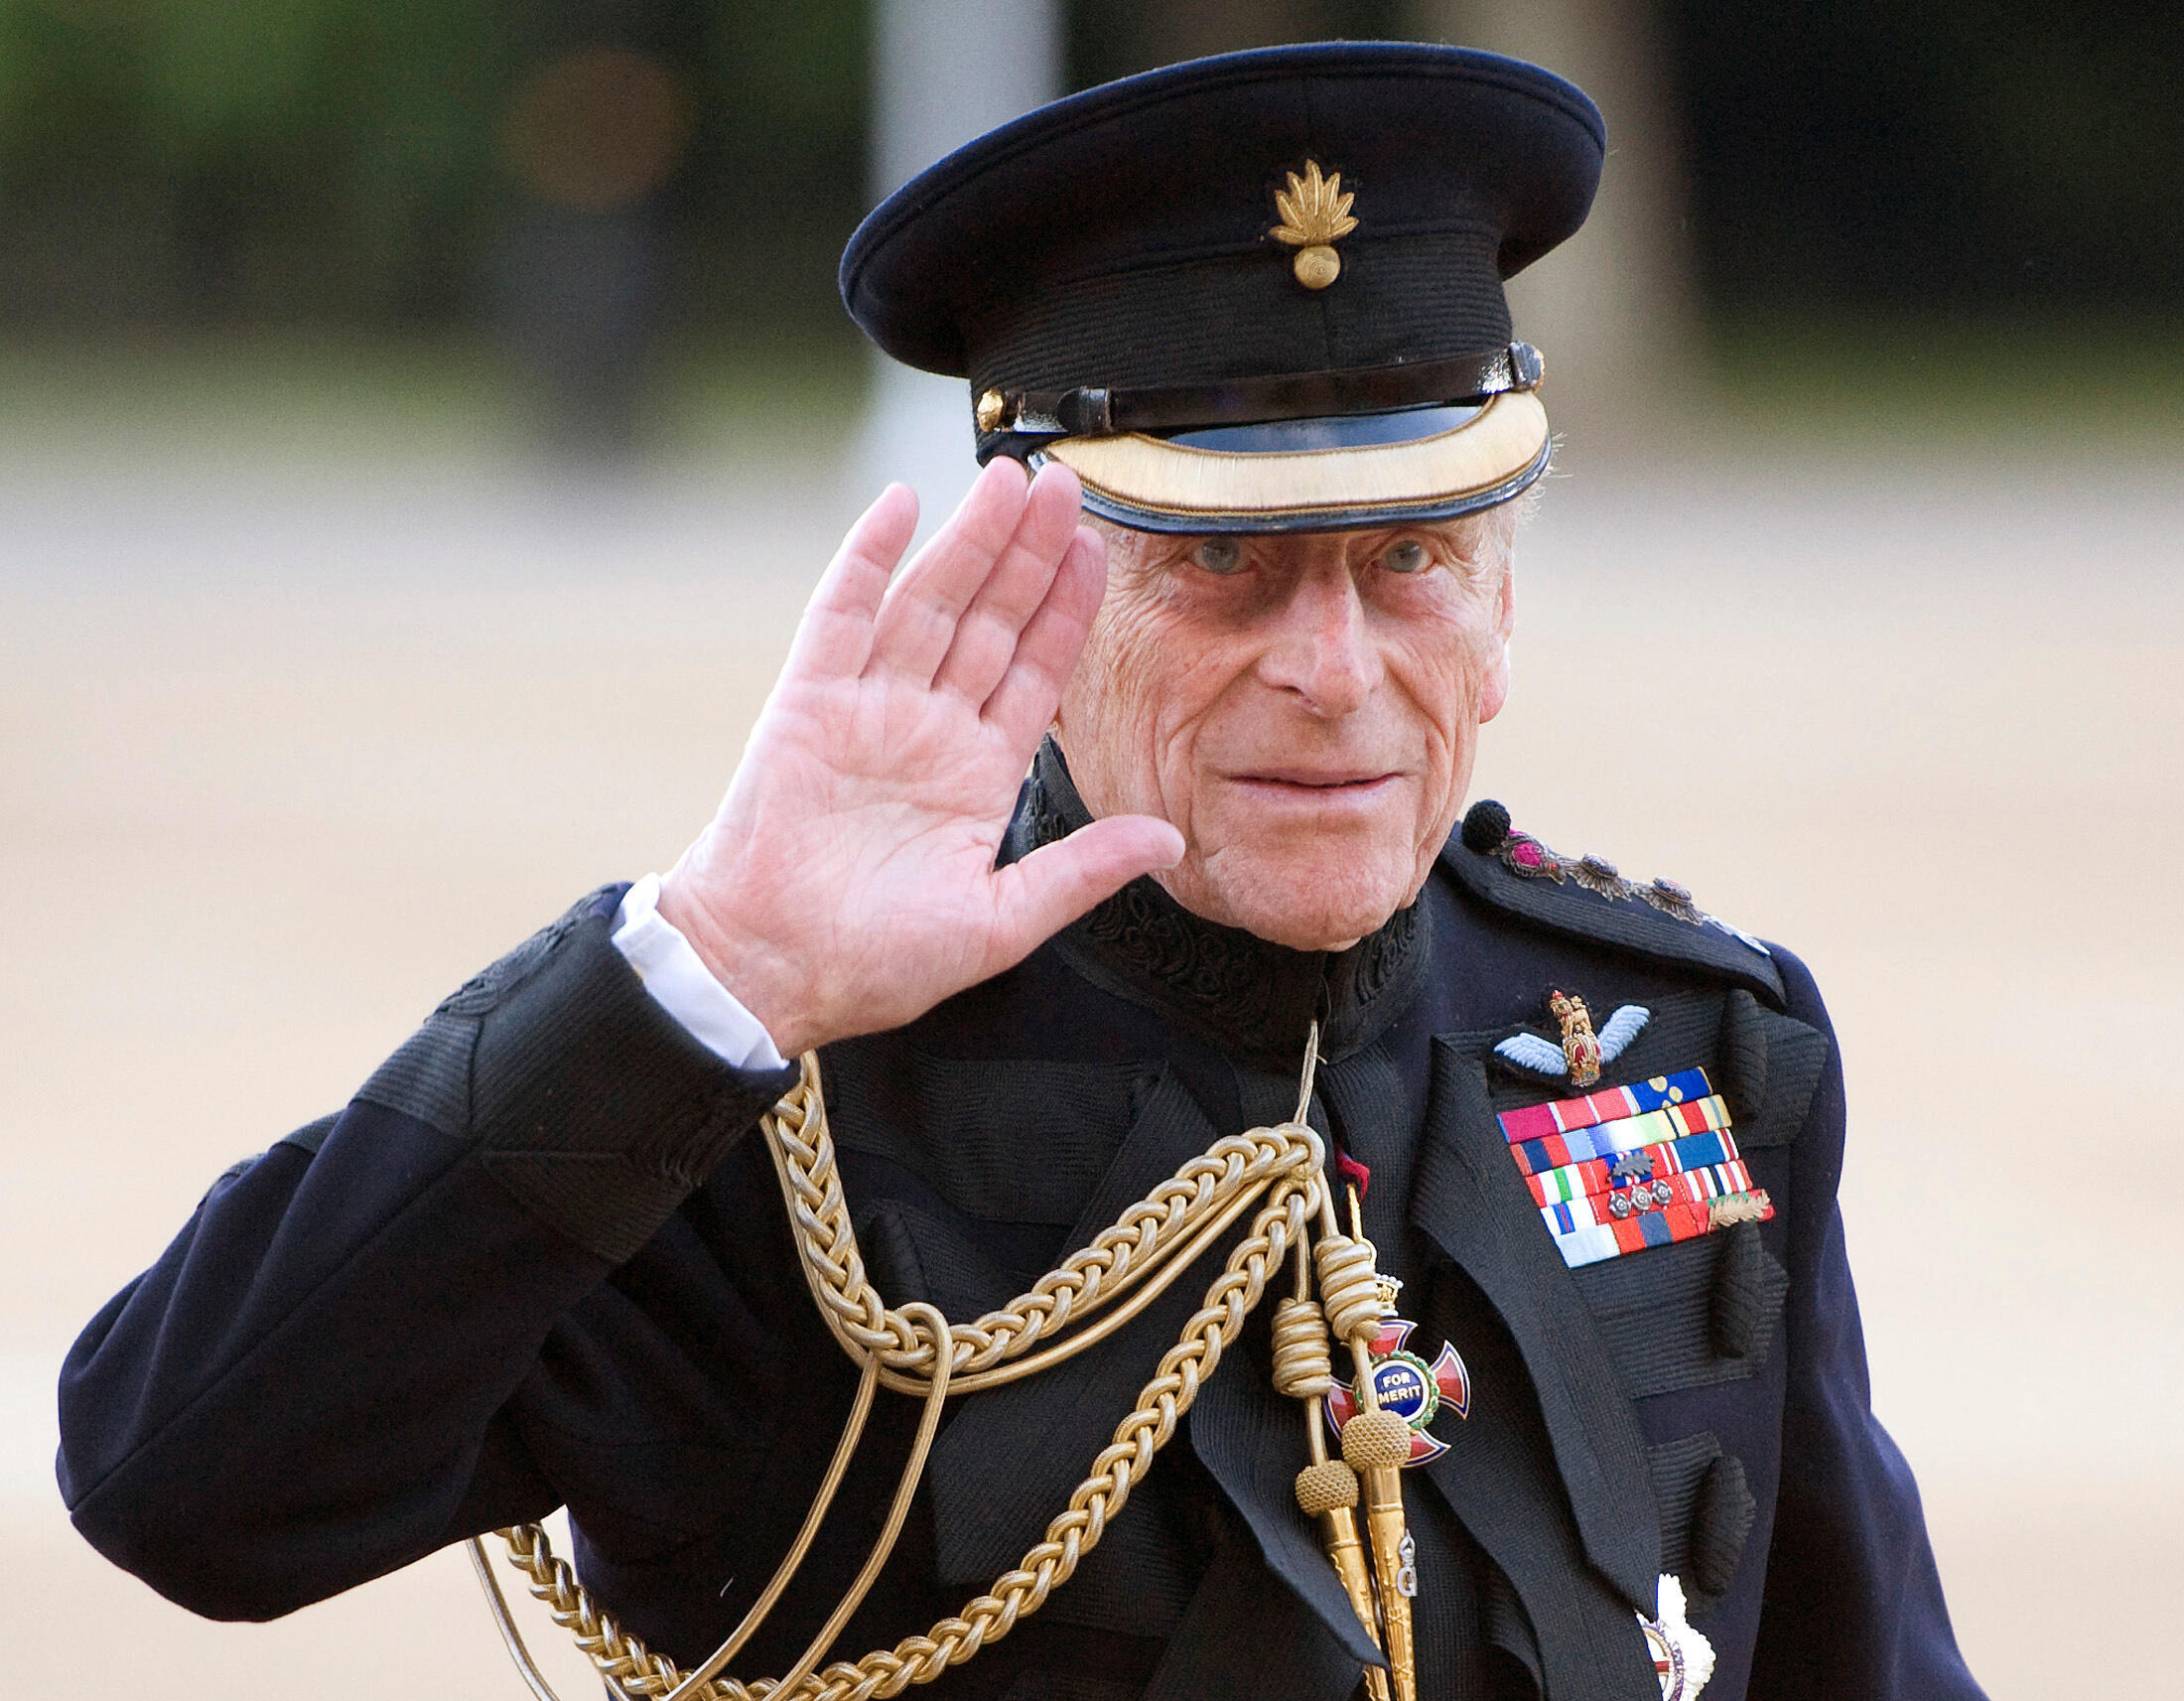 Britain's Prince Philip arrives on the eve of his 90th birthday to take the salute of the Household Division Beating Retreat on Horse Guards Parade in London June 9, 2011.